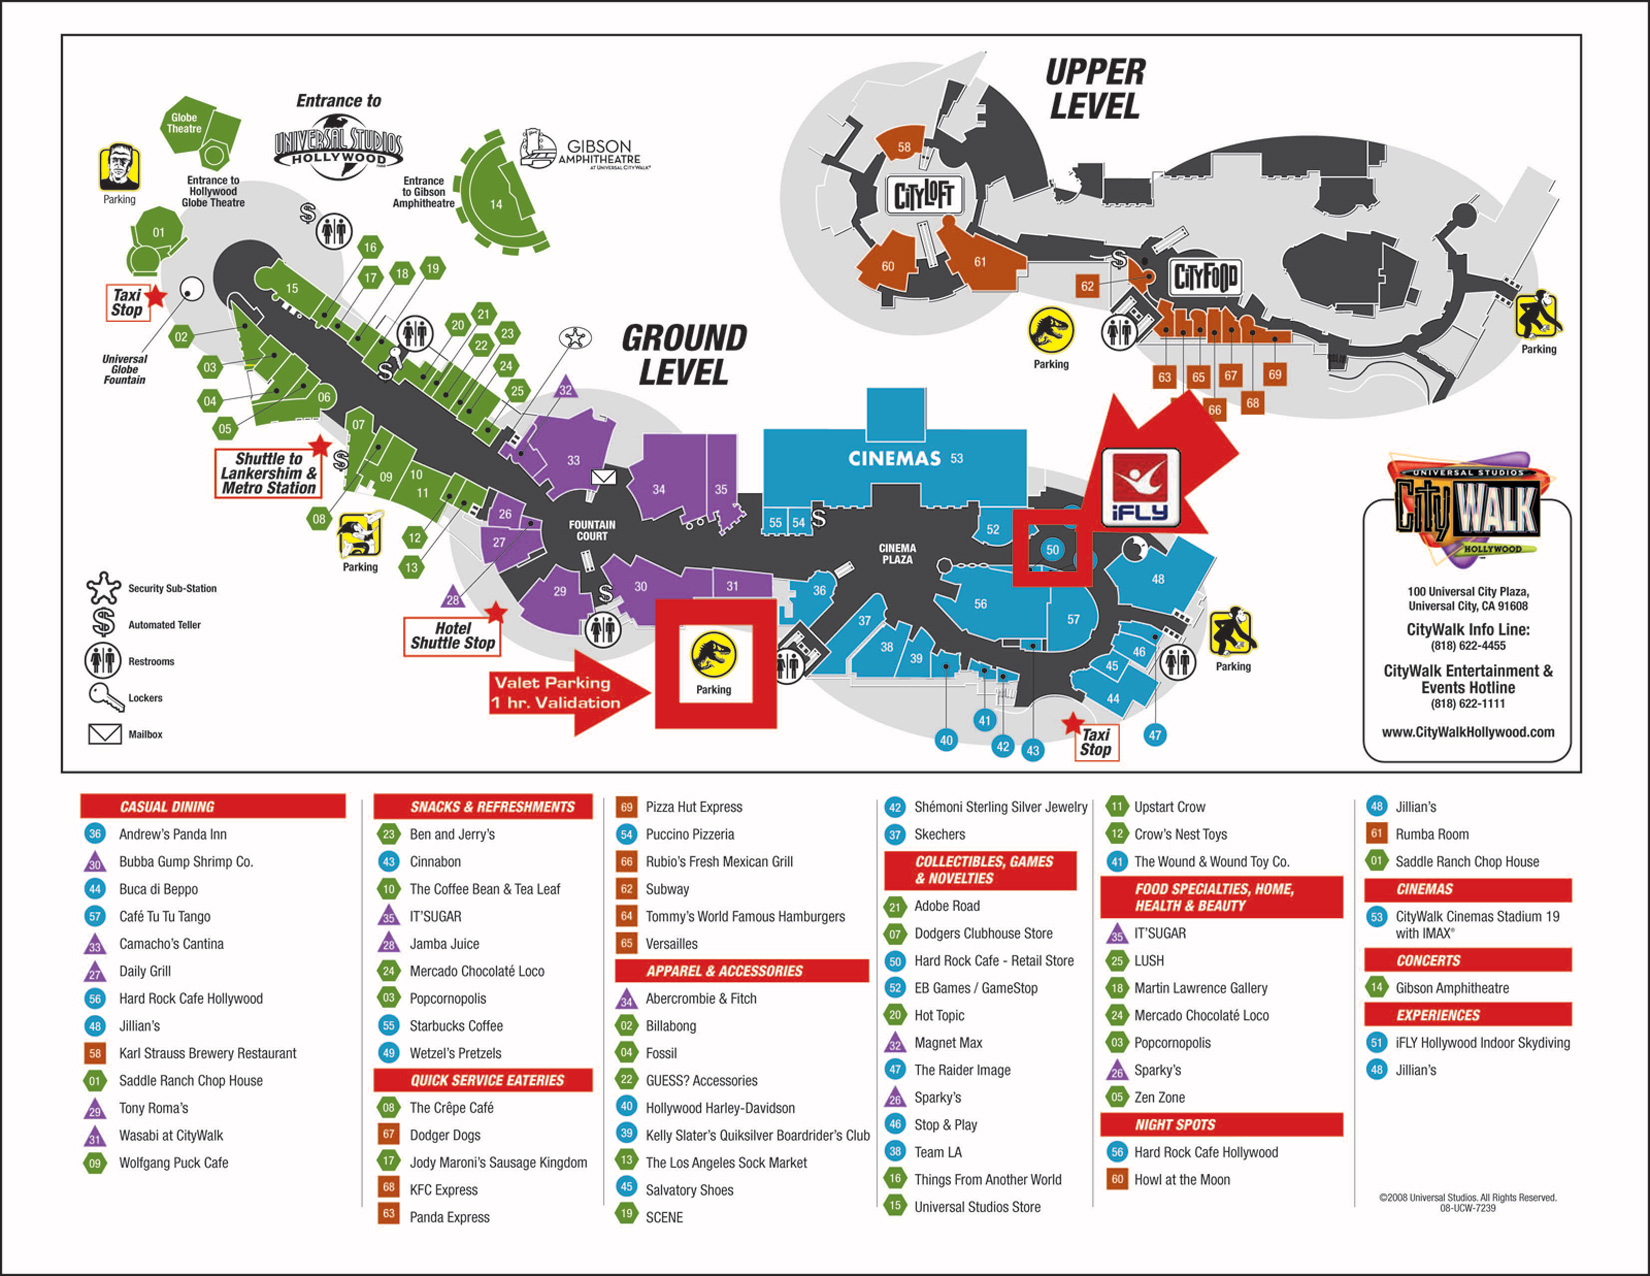 Welcome Universal Citywalk Guests! - Ifly Hollywood - Universal Citywalk California Map